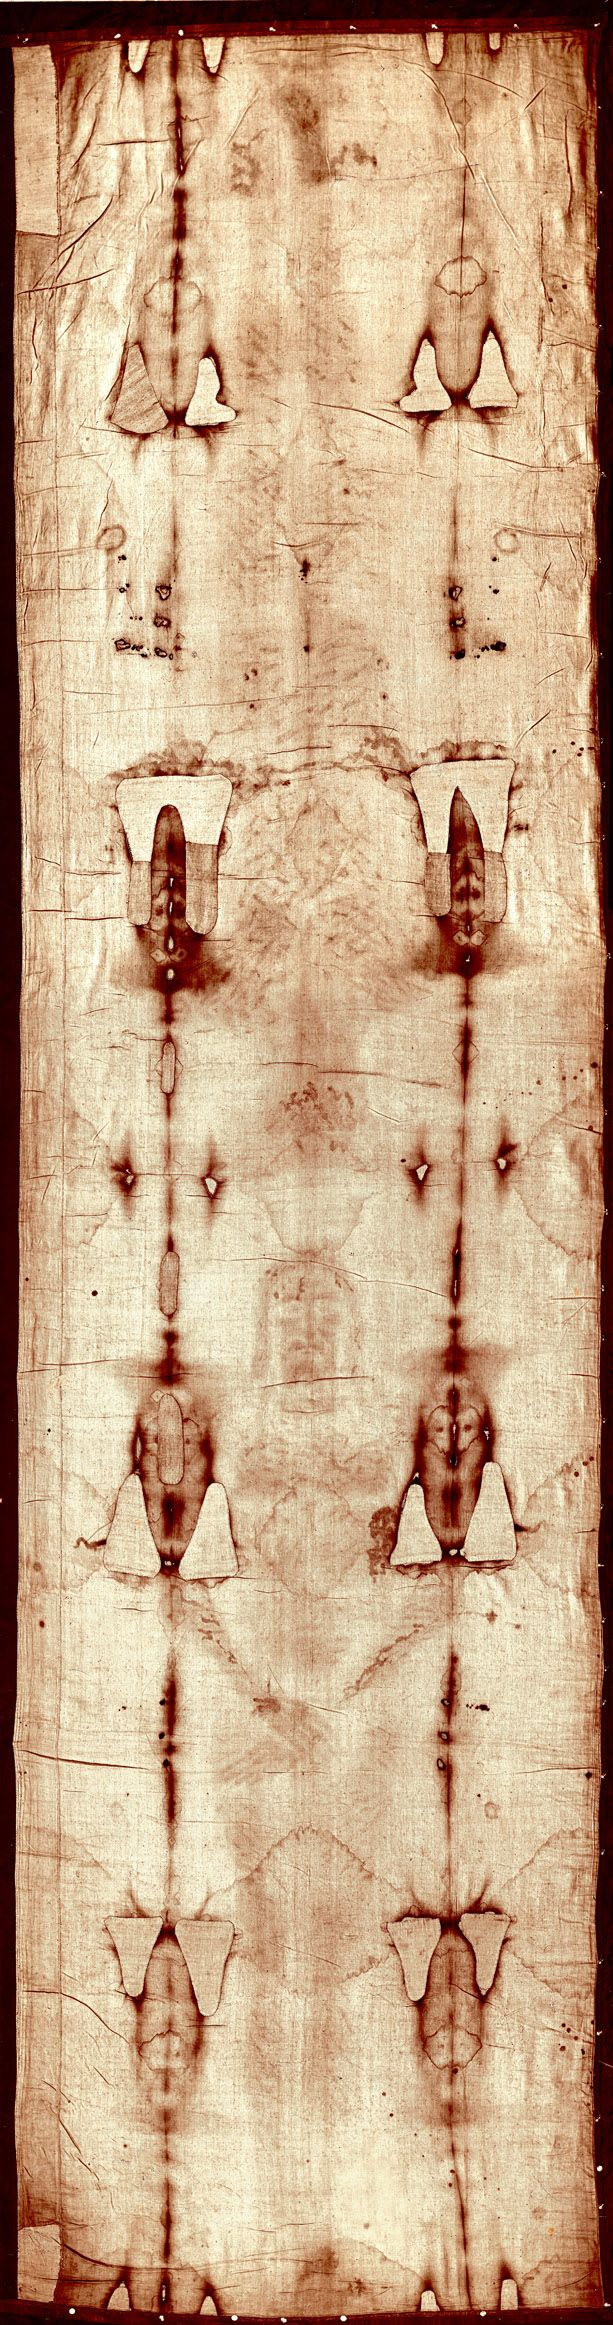 Holy Shroud of Turin, the famous relic which is believed to have the image of Jesus Christ.